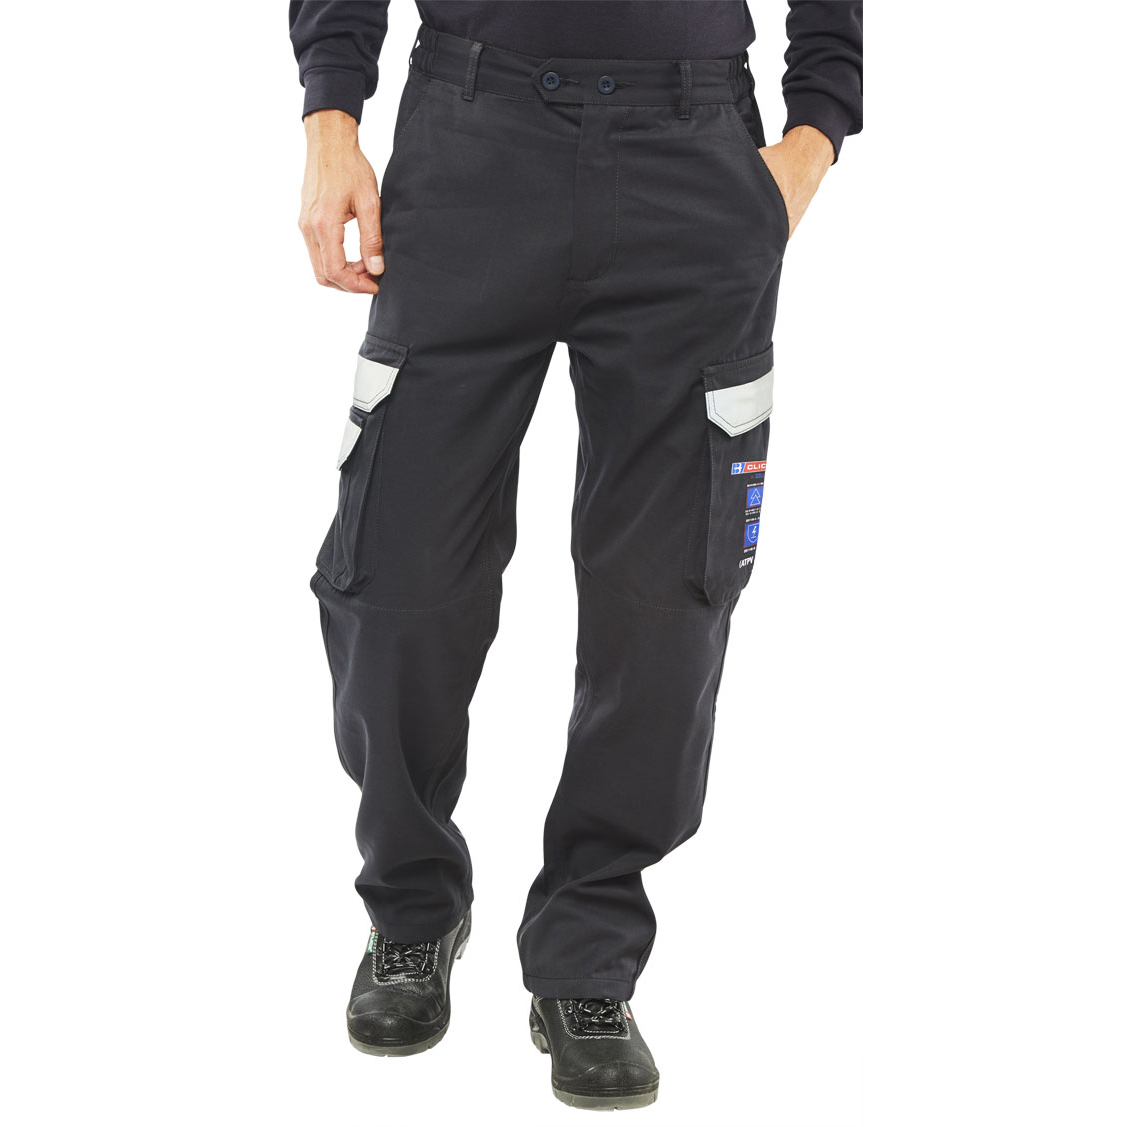 Fire Retardant / Flame Resistant Click Arc Flash Trousers Fire Retardant Navy Blue 42 Ref CARC4N42 *Up to 3 Day Leadtime*